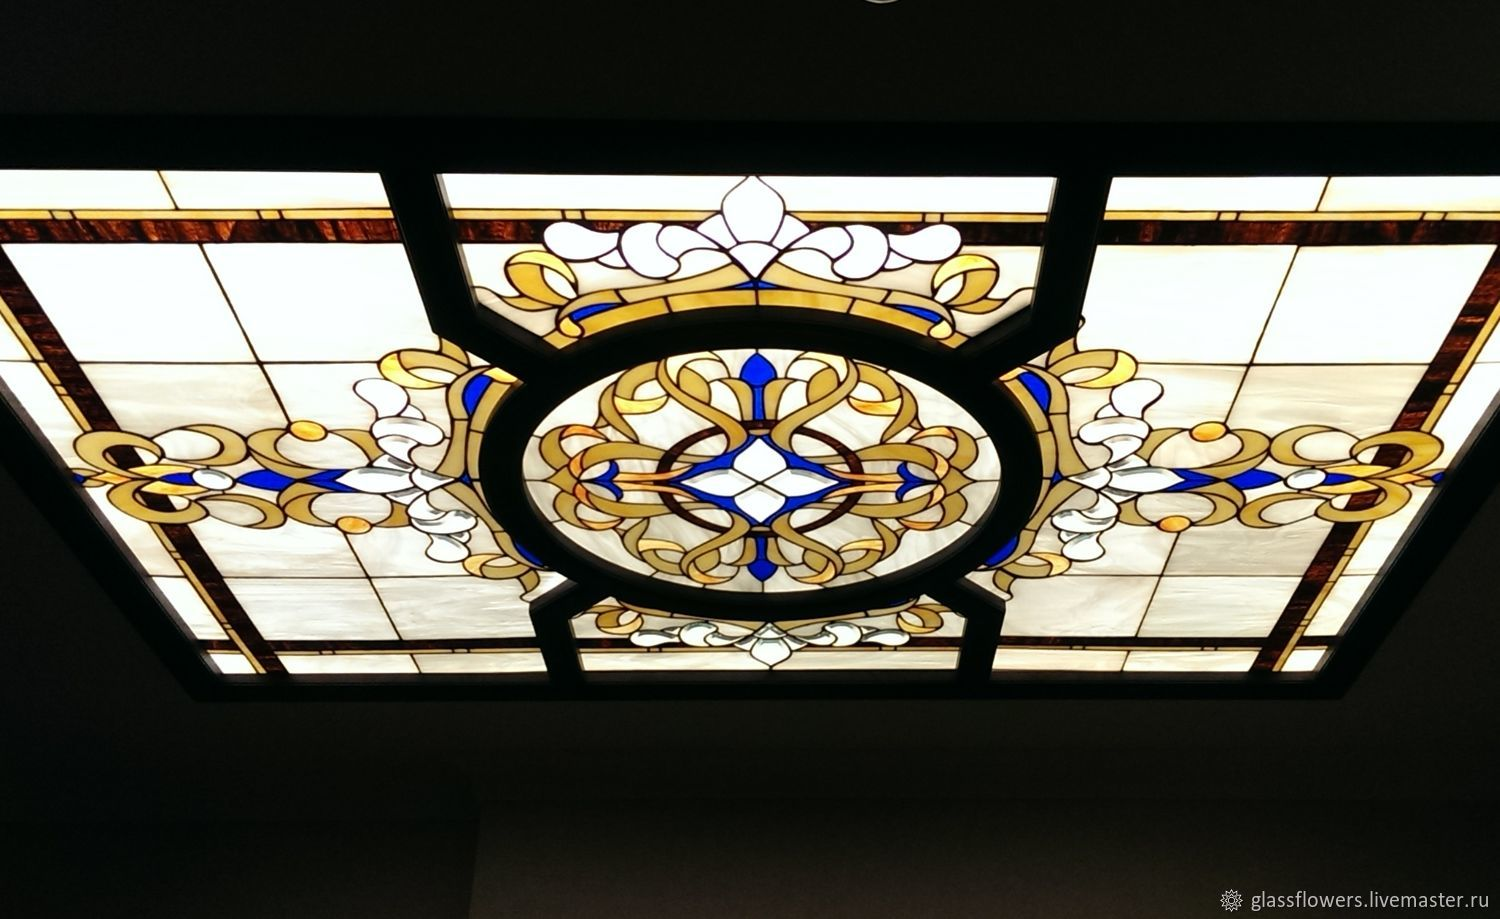 ceiling stained glass window, stained glass Tiffany, stained glass SPb, glass flowers stained glass workshop, stained glass, illuminated, interior design, stained glass ceiling, stained glass Windows,